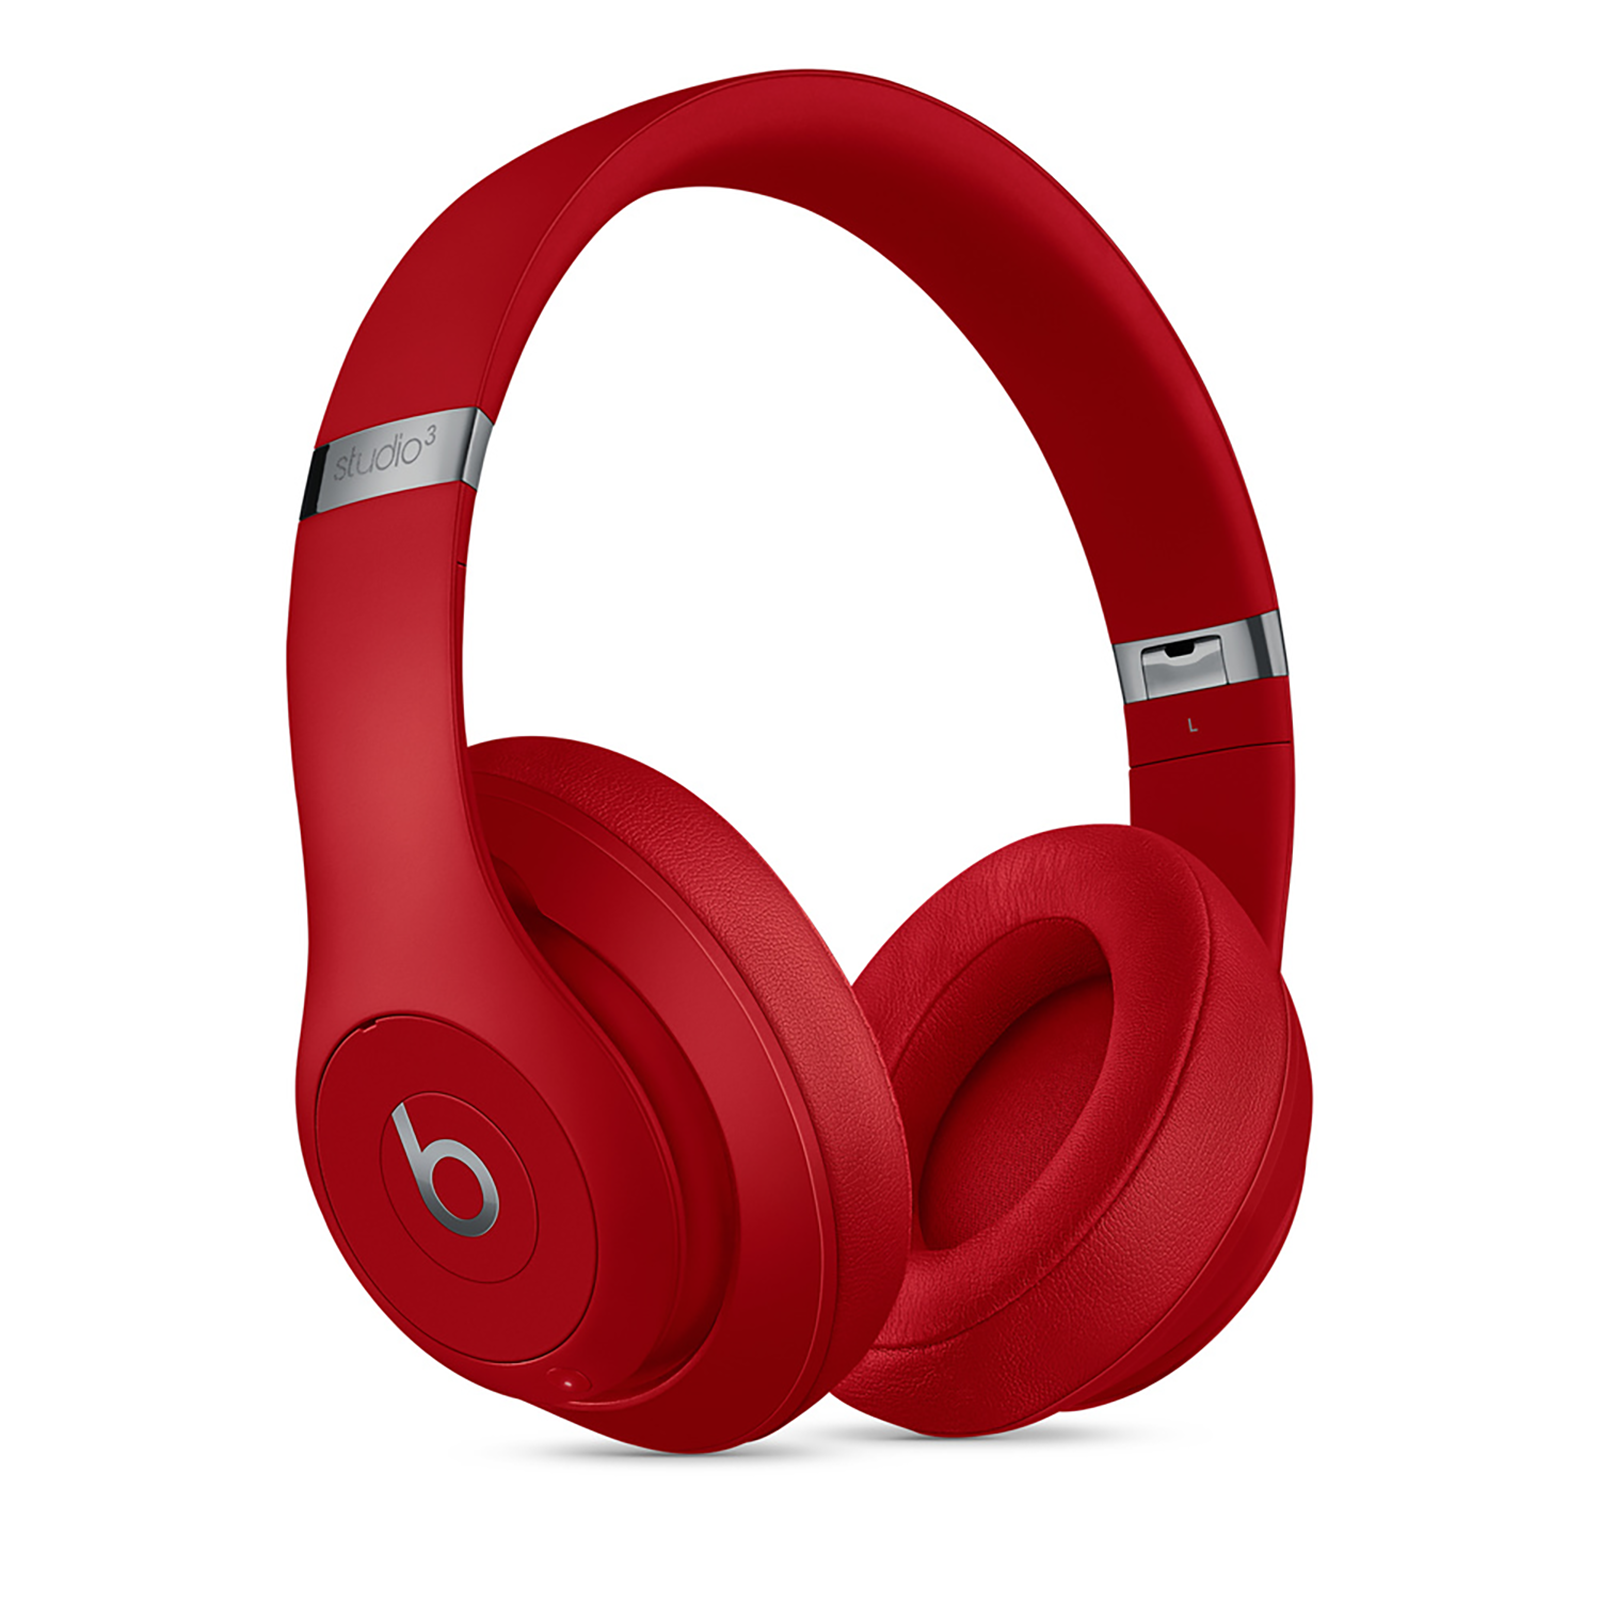 Beats Studio 3 Over-Ear Wireless Headphone with Mic (Bluetooth, MX412ZM/A, Red)_1